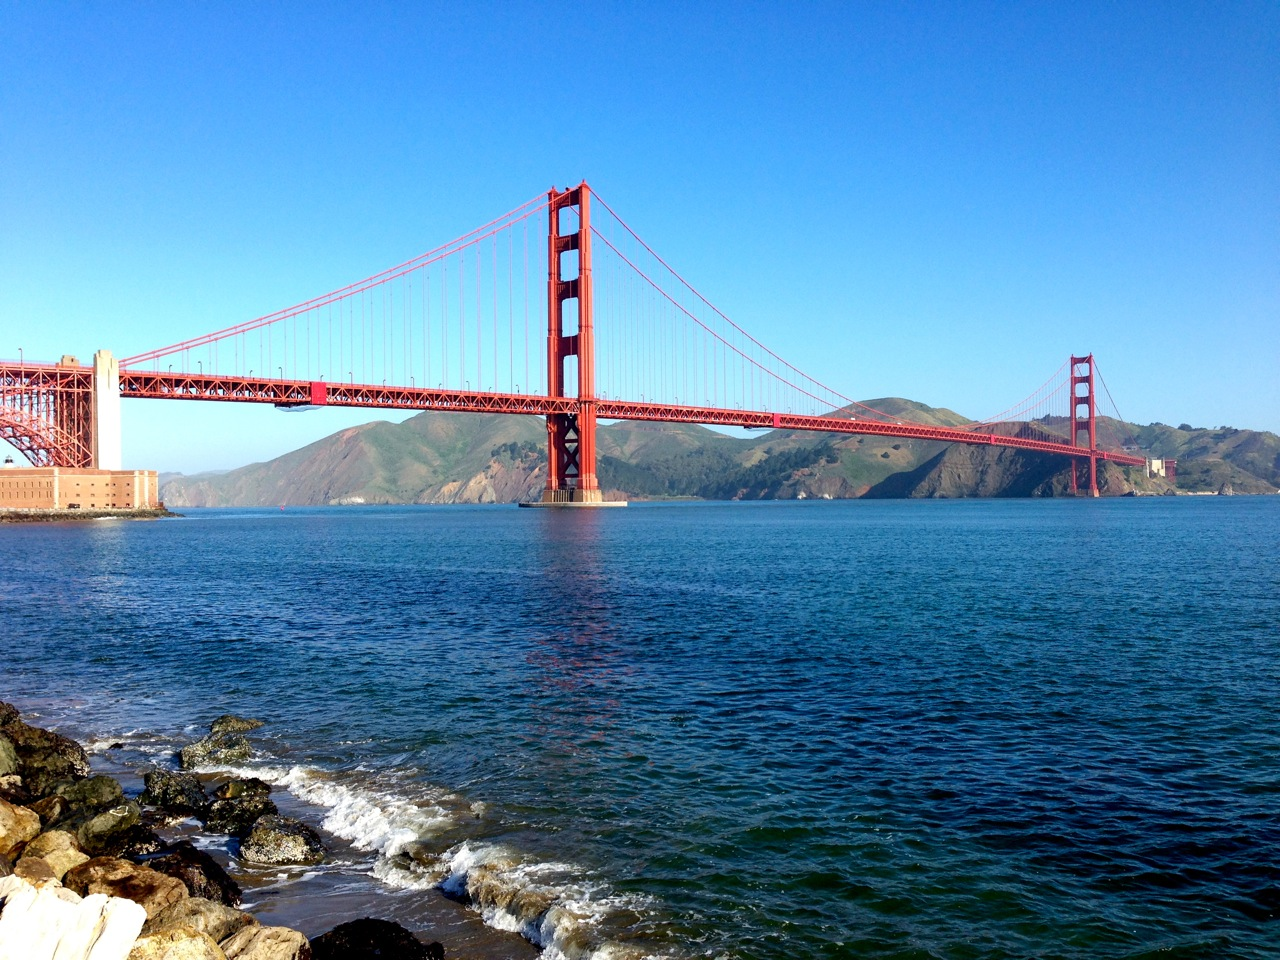 View of the Golden Gate Bridge from Crissy Field